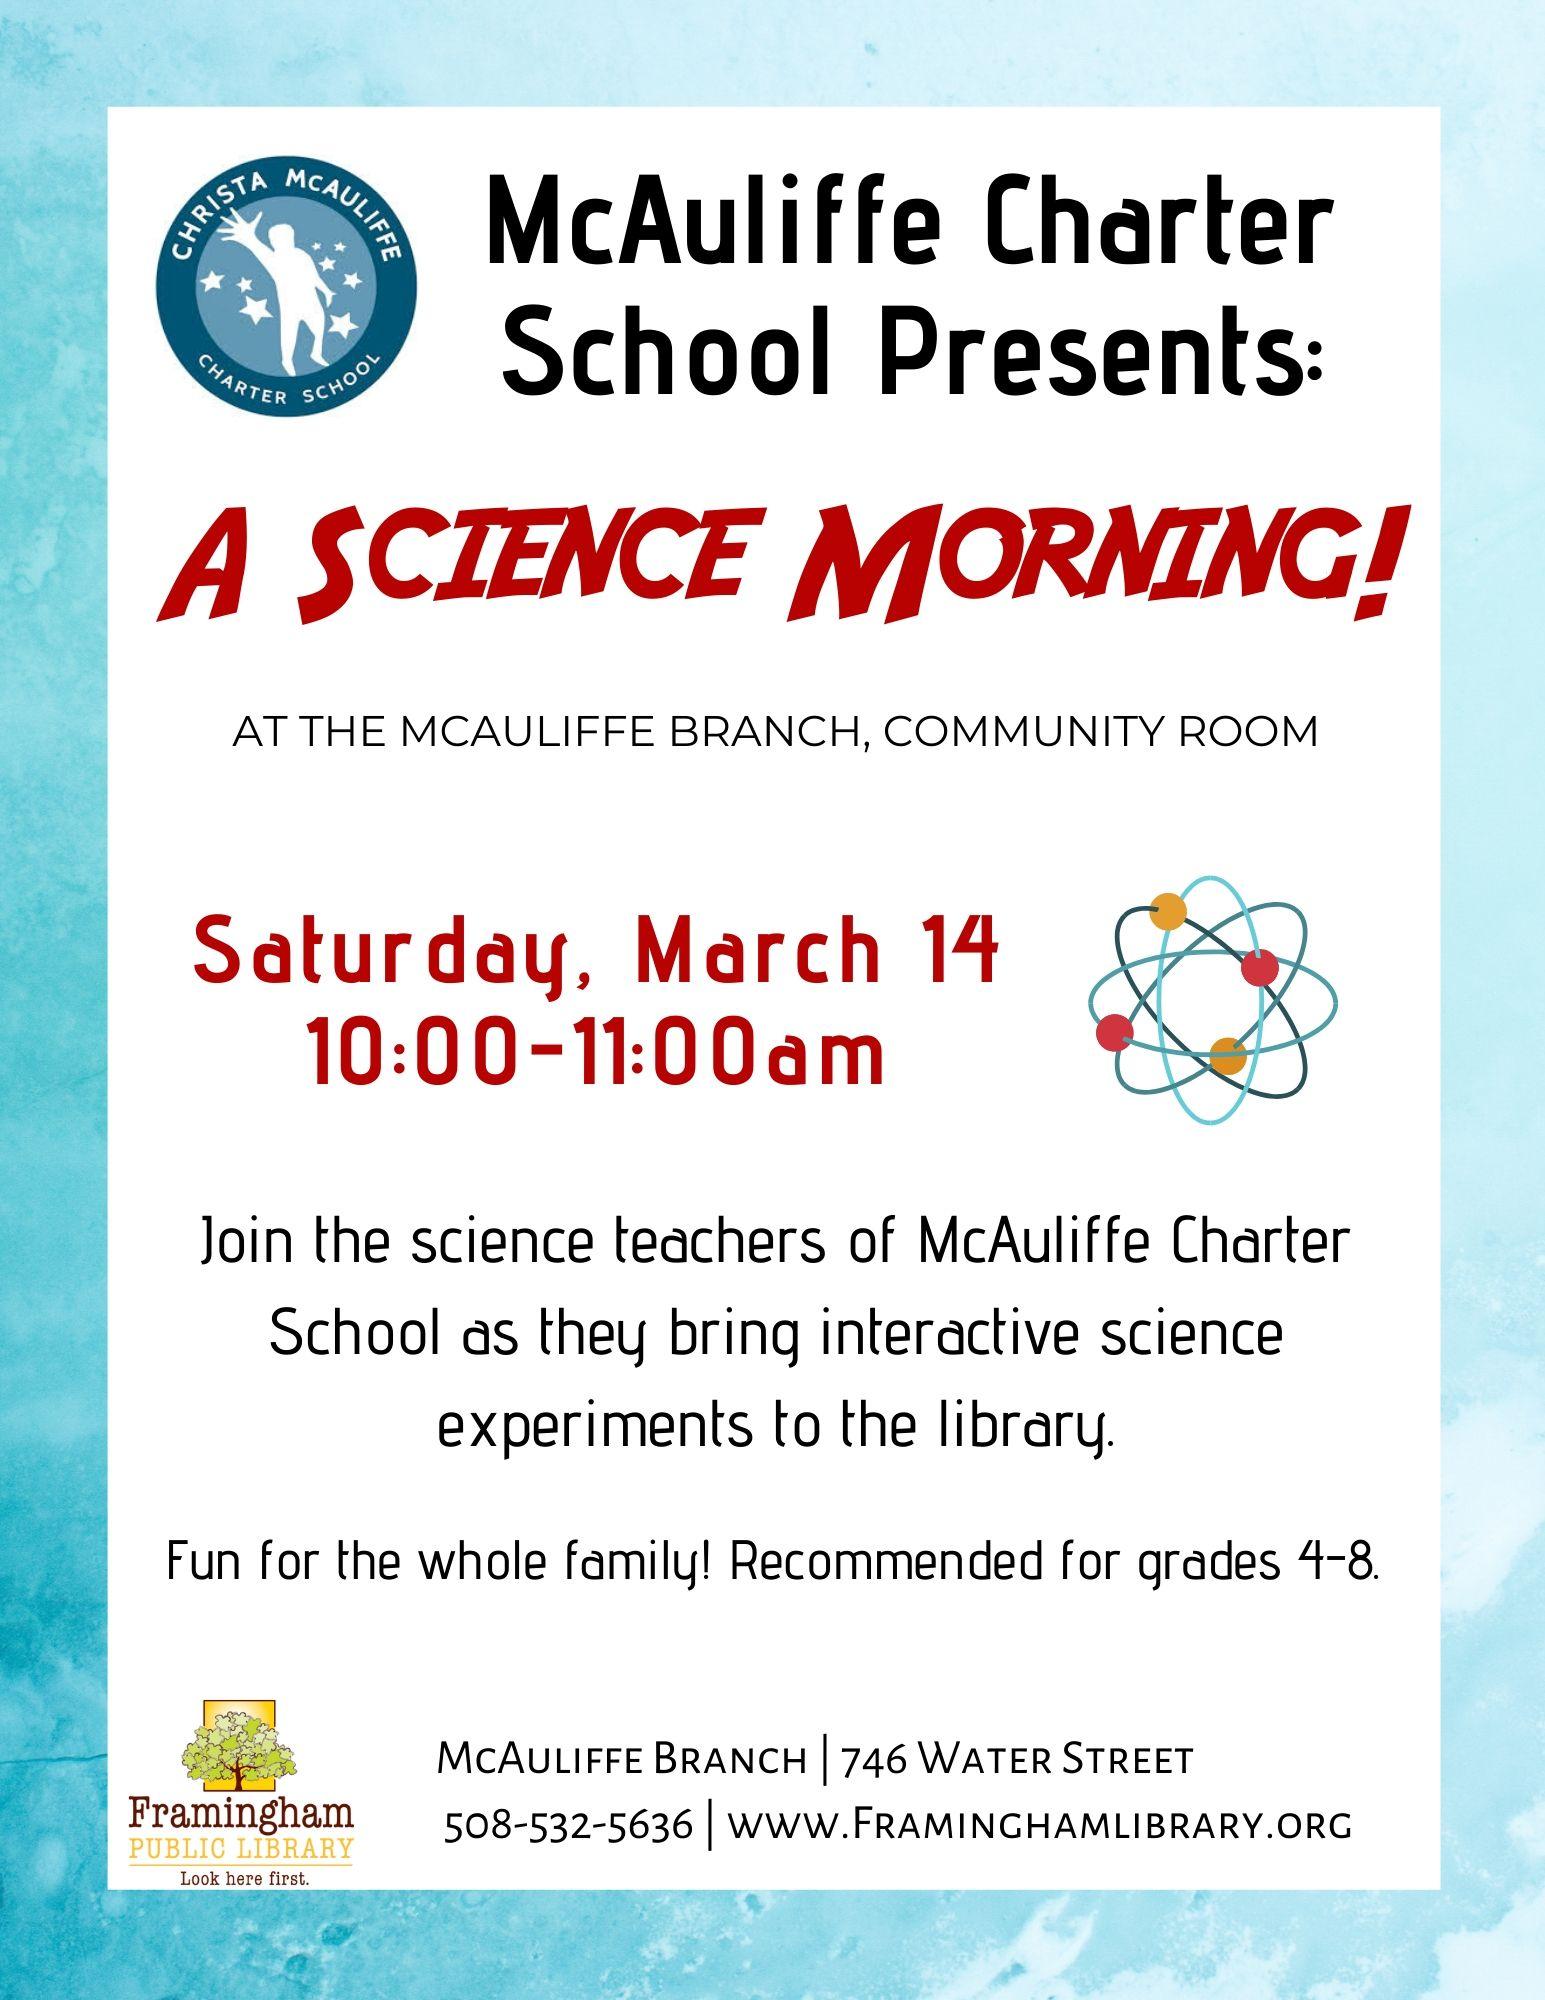 McAuliffe Charter School Presents: A Science Morning! (POSTPONED: STAY TUNED FOR FUTURE DATE) thumbnail Photo